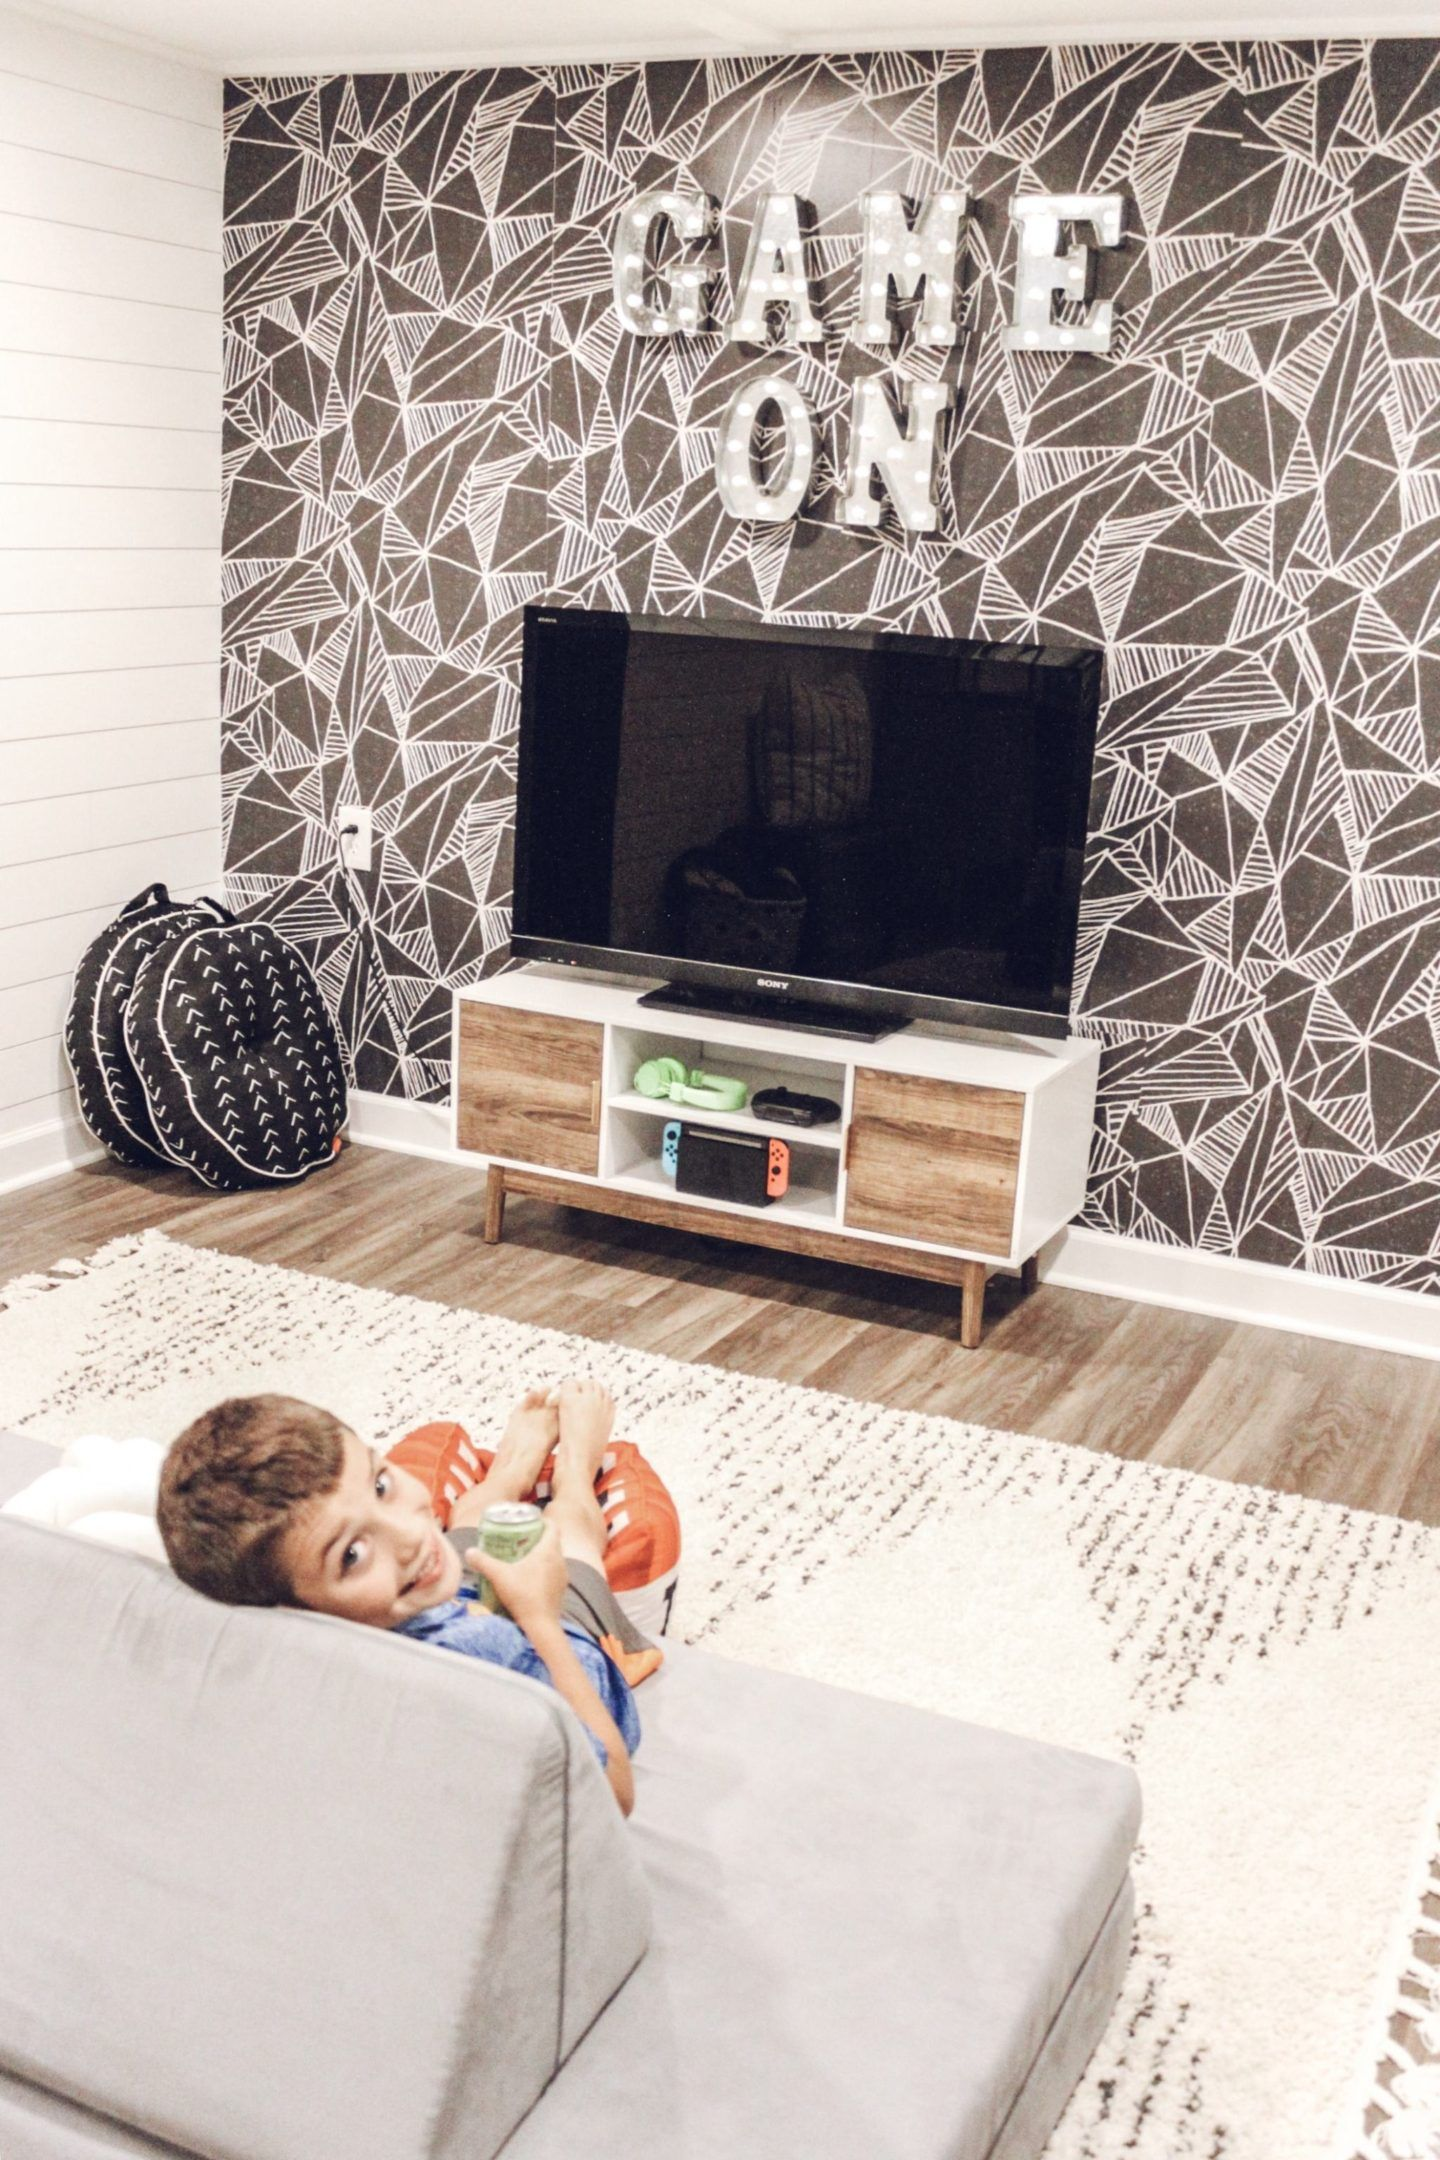 All are fun for you and your friends. Game Room Makeover with Wallpaper - Inspired Reality ...